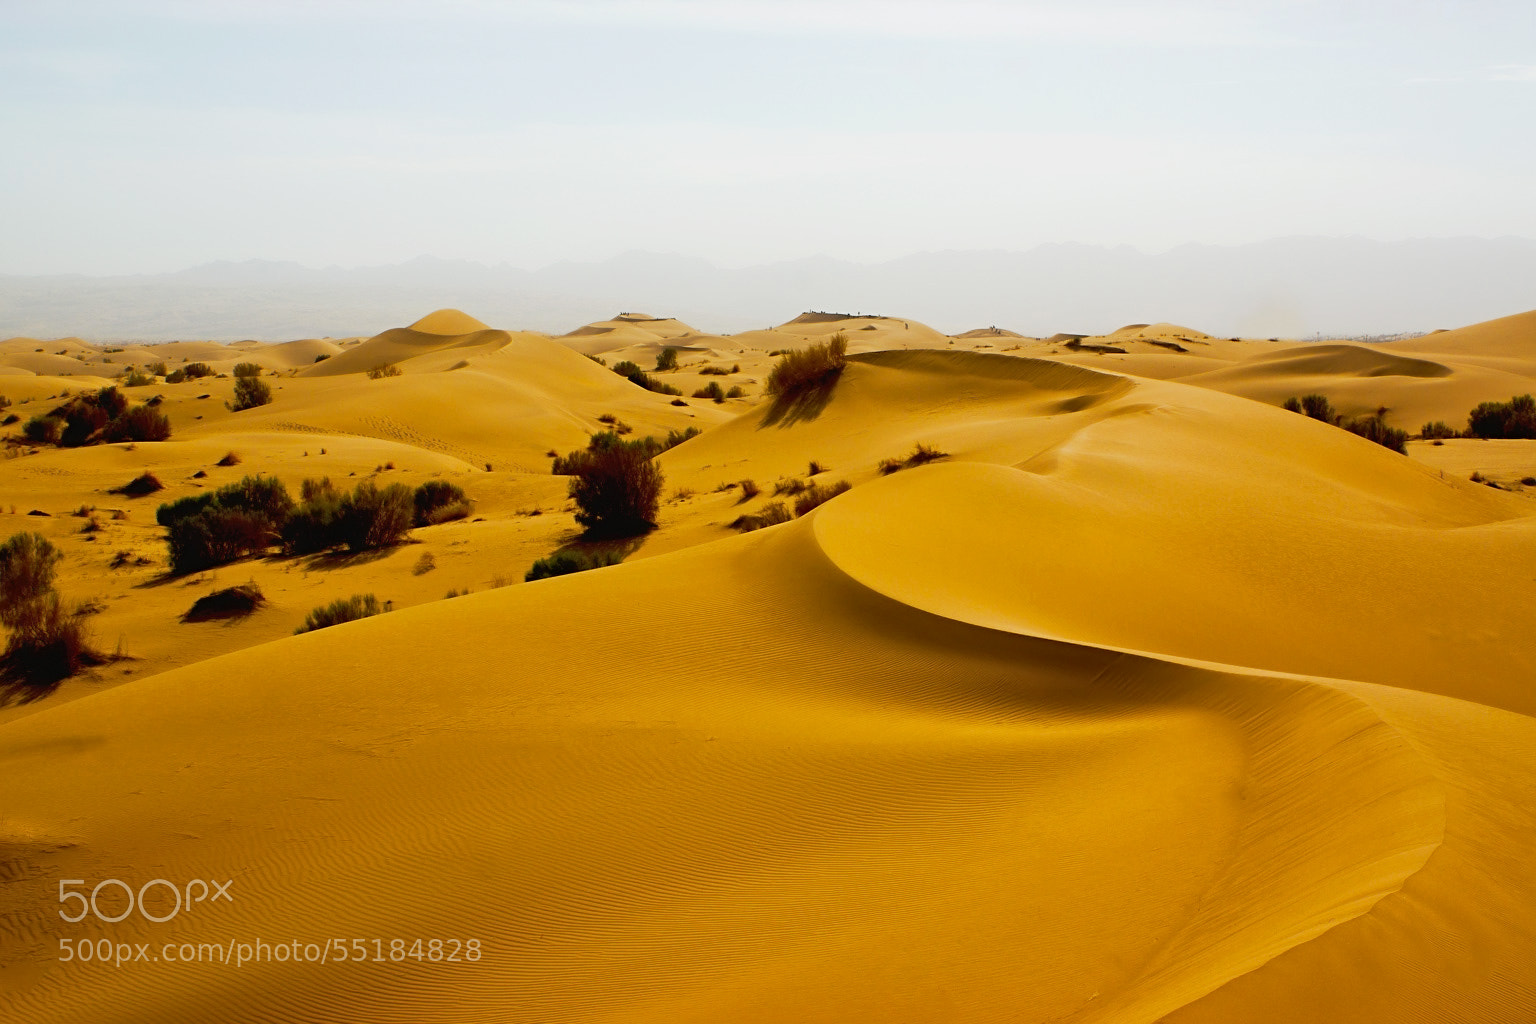 Photograph ~Desert at noon~ by S'Mojtaba Hosseini on 500px